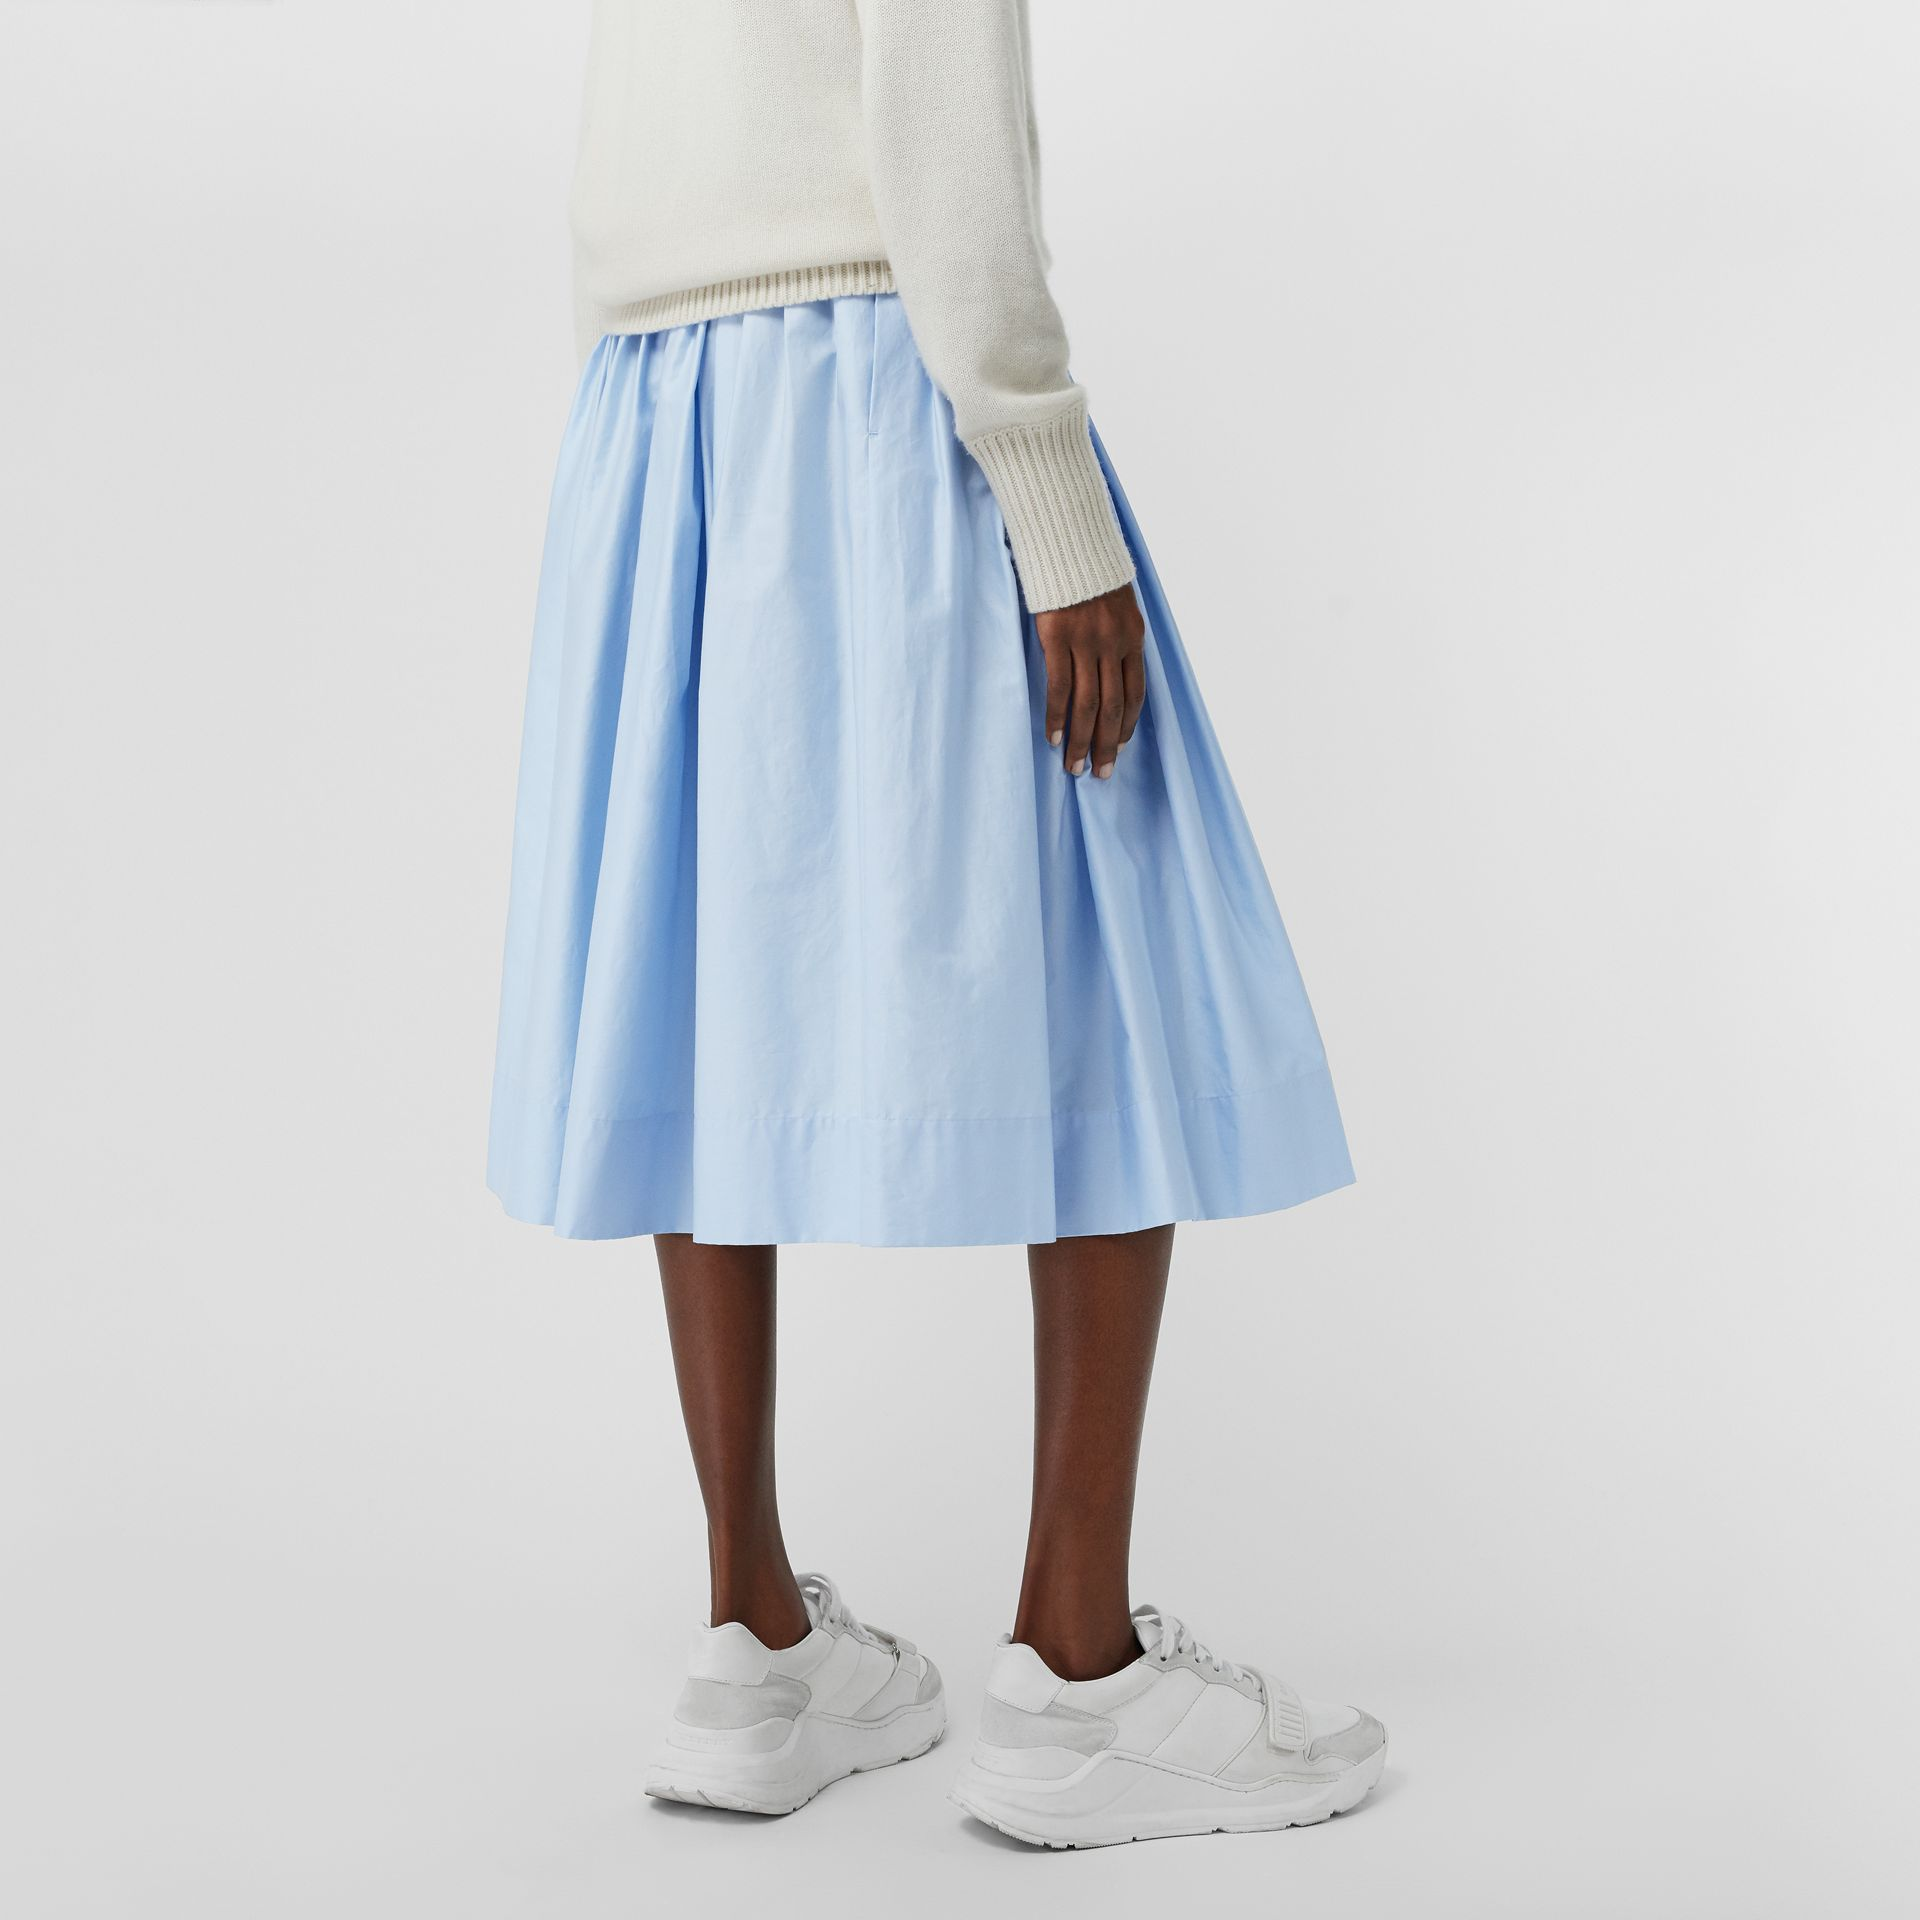 Rainbow Print Cotton Sateen Skirt in Light Blue - Women | Burberry - gallery image 2